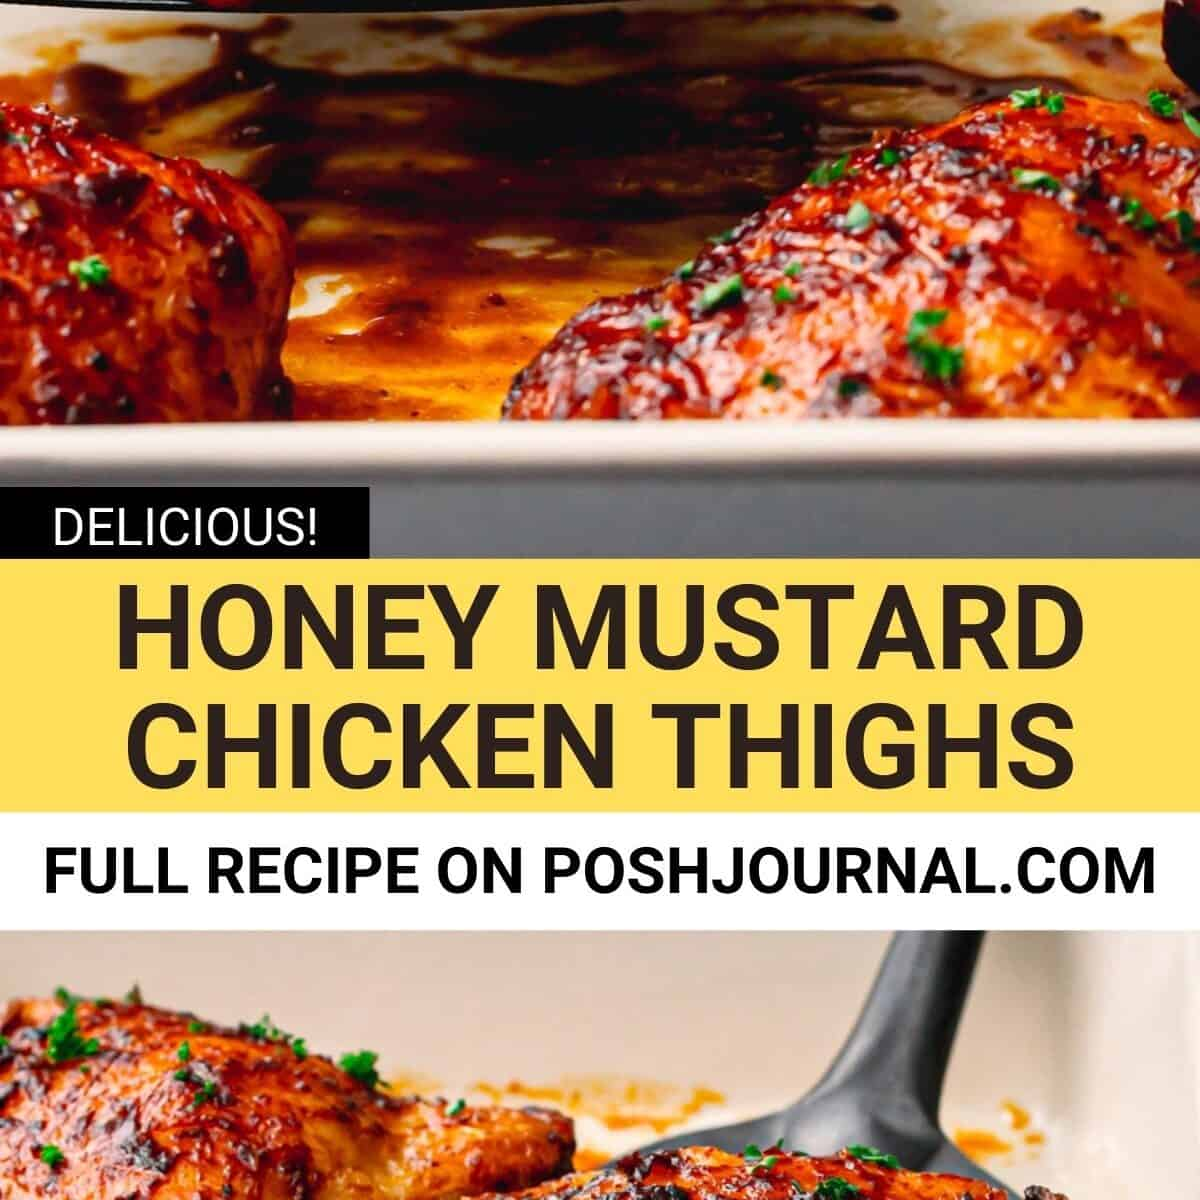 Honey Mustard Chicken Thighs Recipe